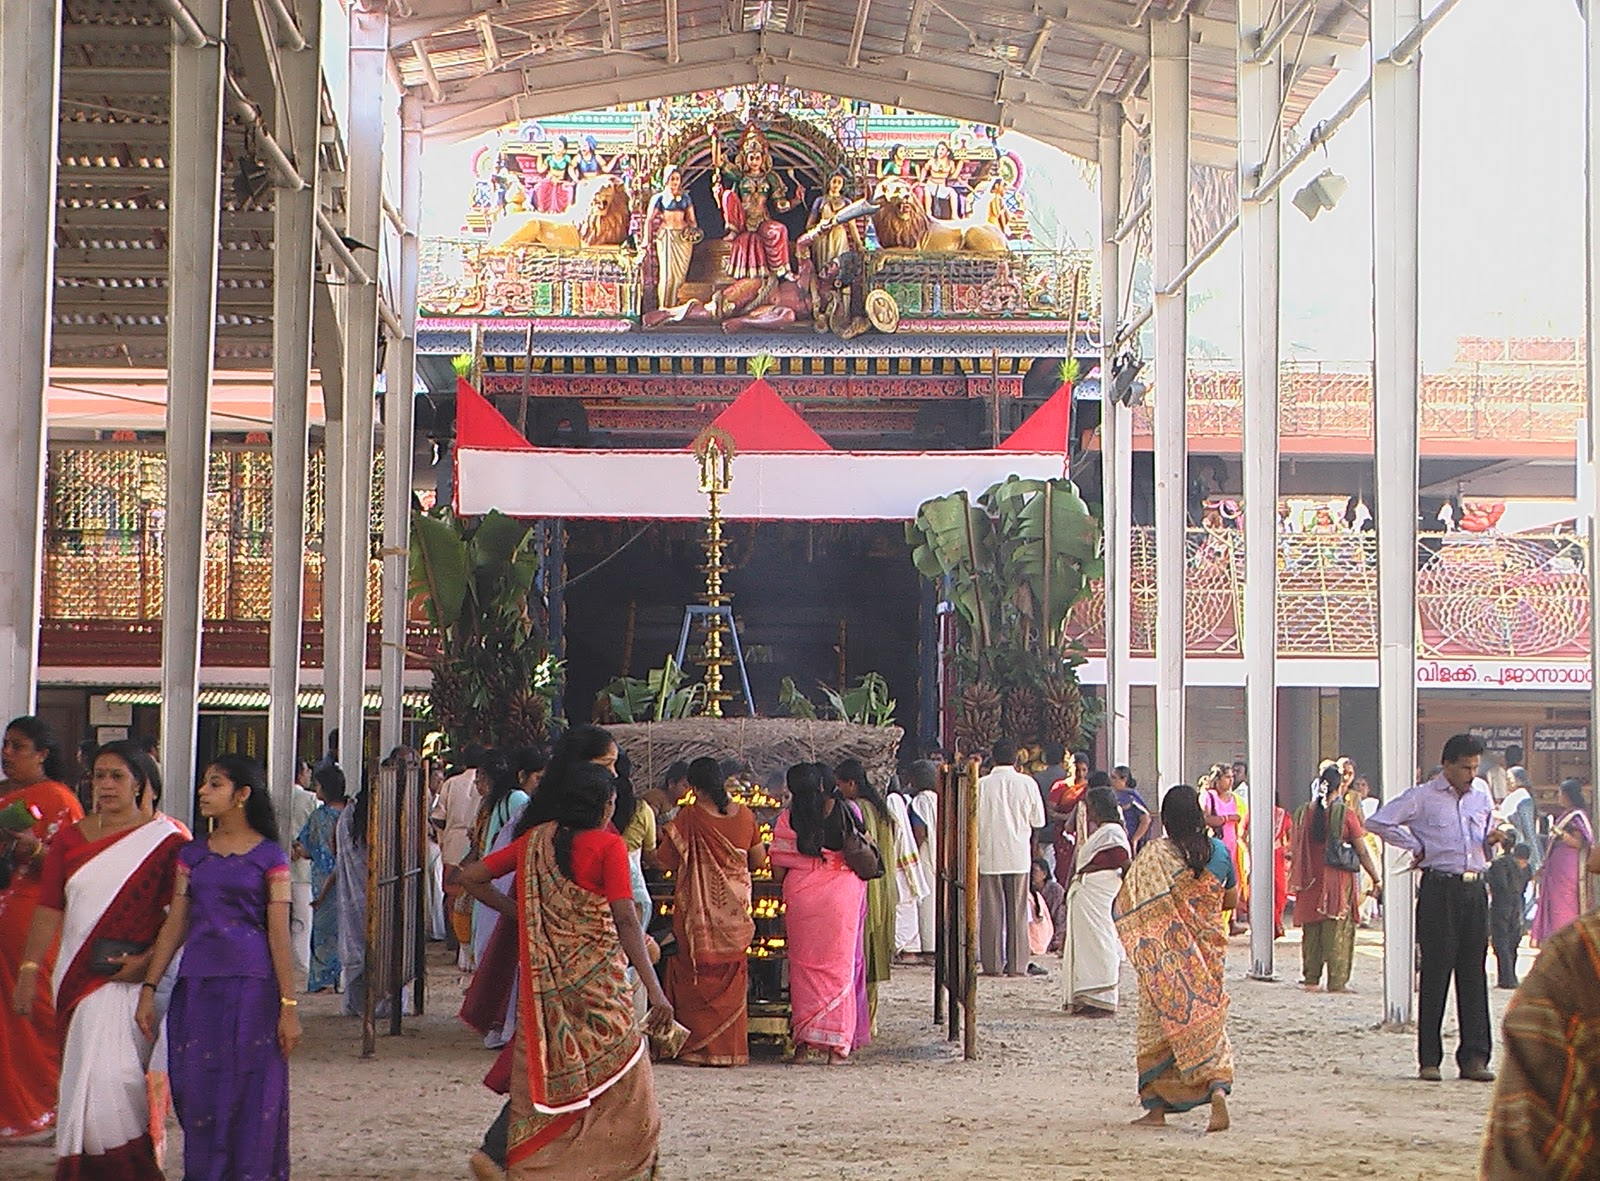 Attukal Temple Festival Began Today With The Traditional Kappukettu And Kudiyiruthu At 10AM Witnessed A Great Crowd To Witness